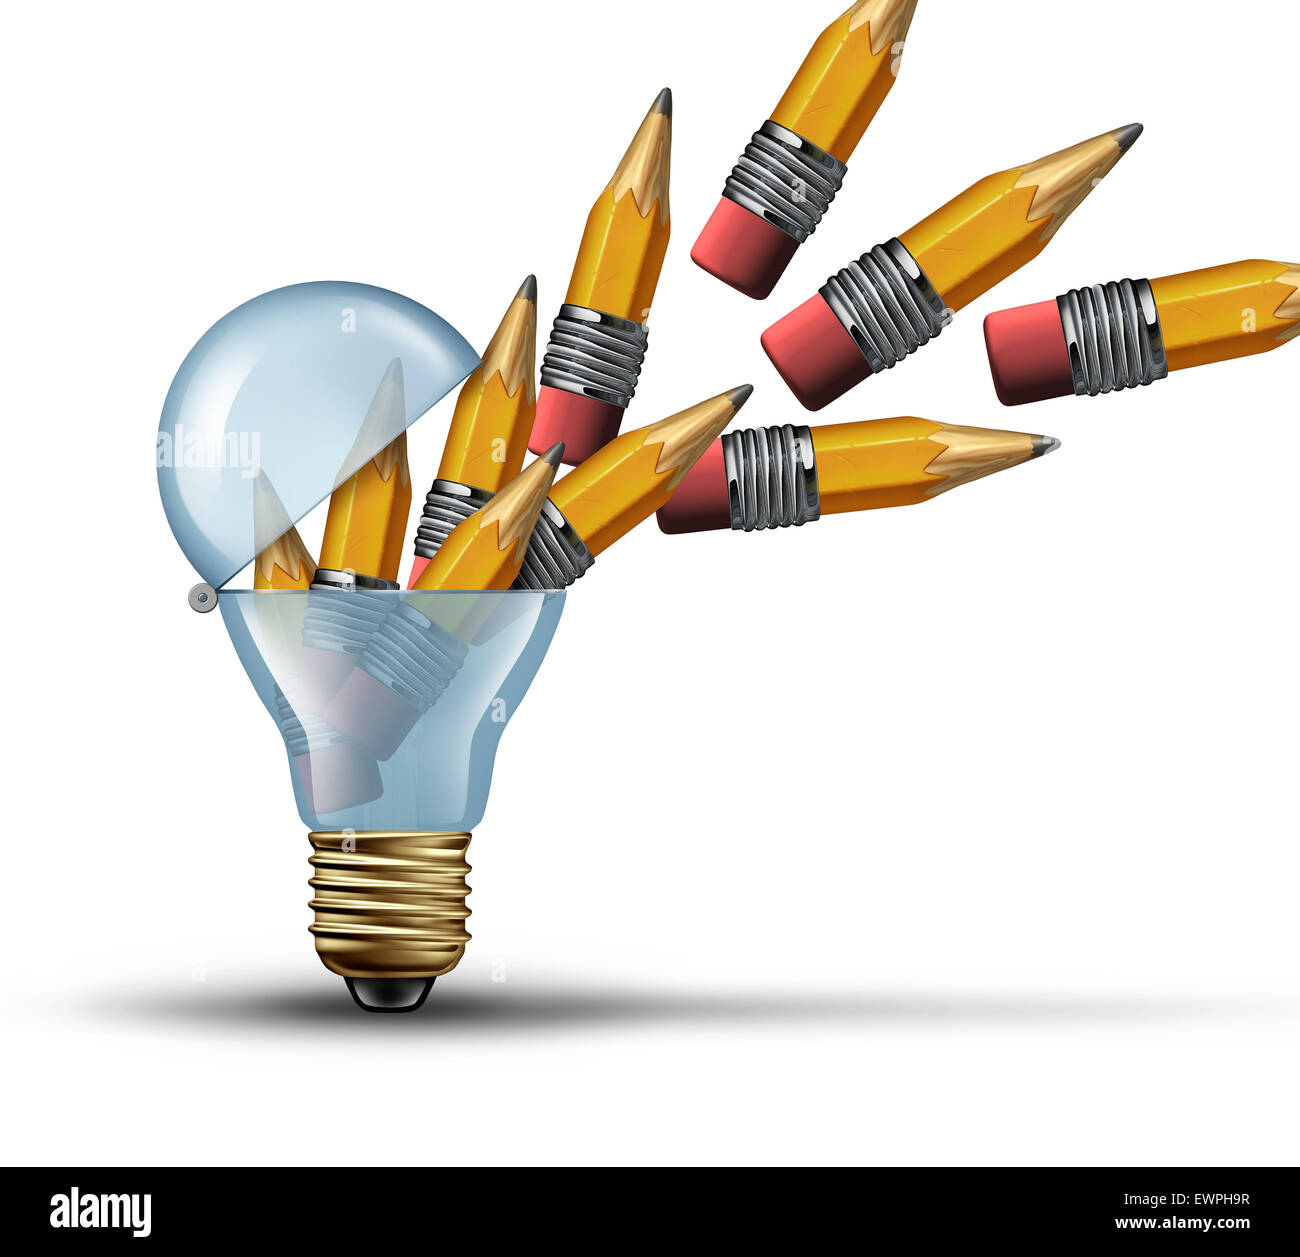 Imagination and creativity concept as an open light bulb or lightbulb symbol for out of the box thinking with a - Stock Image